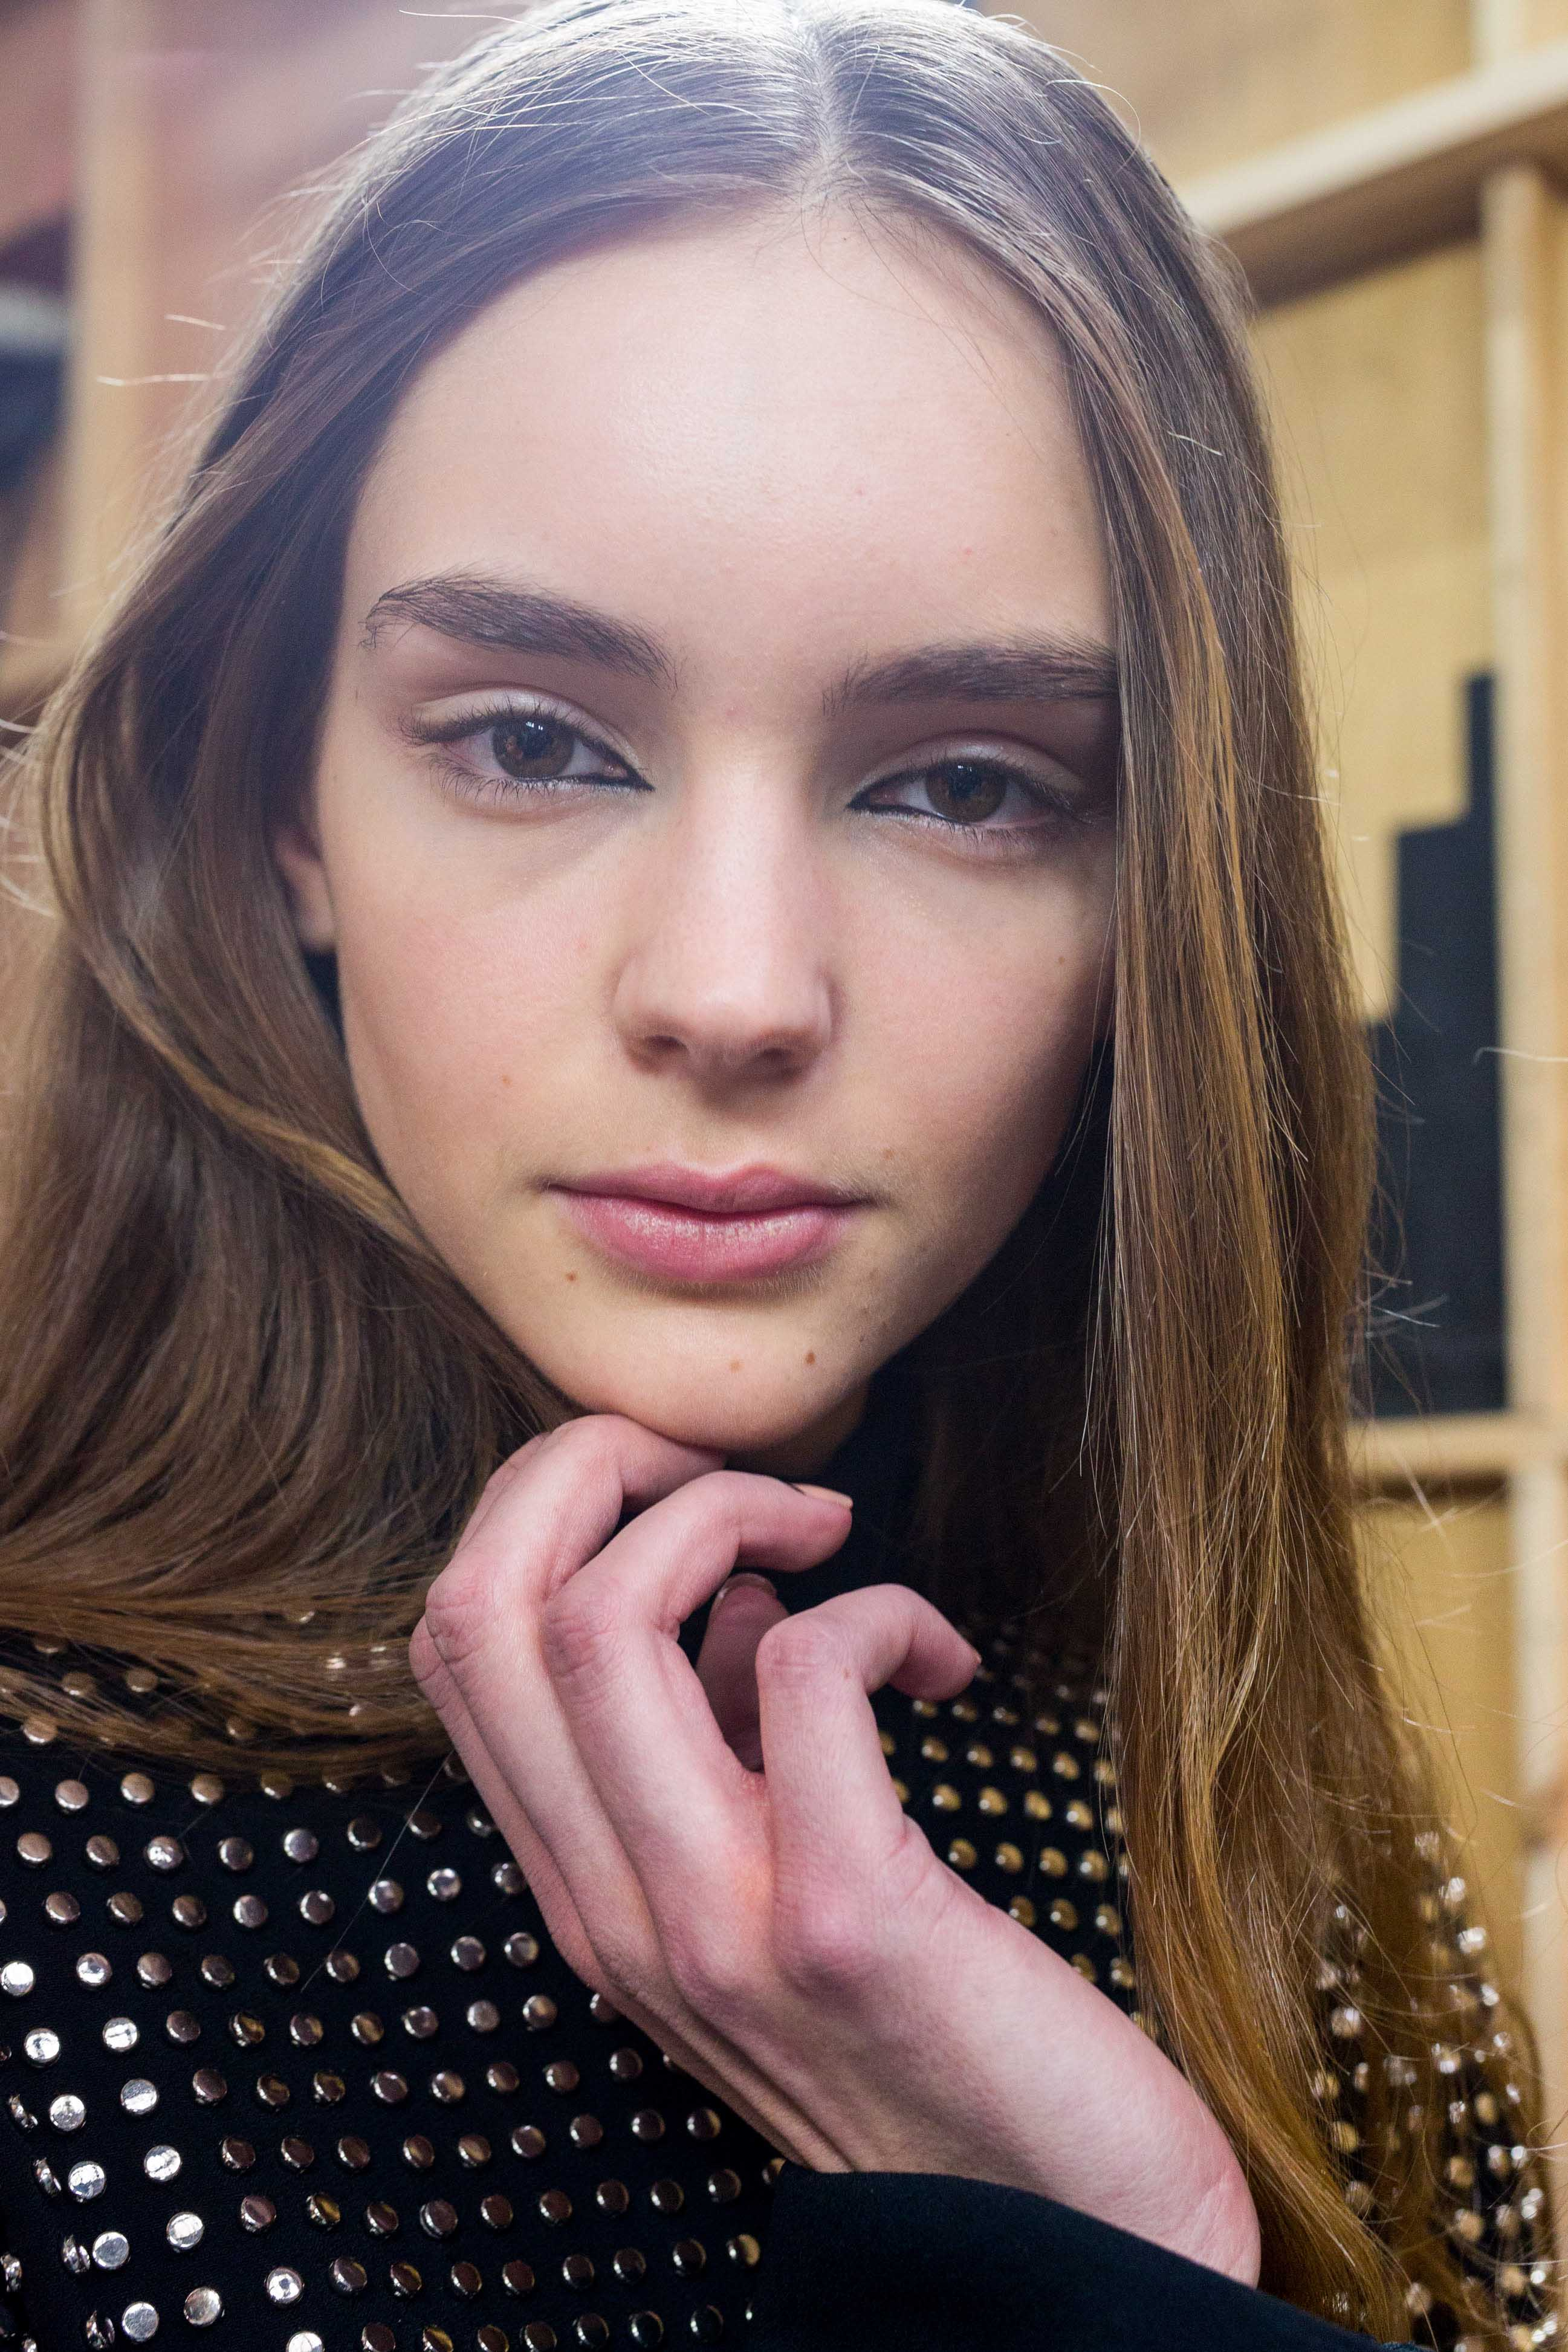 Hair straightening treatment: Model with straight brown hair touching her chin wearing a black studded top backstage at David Korma FW16 show.